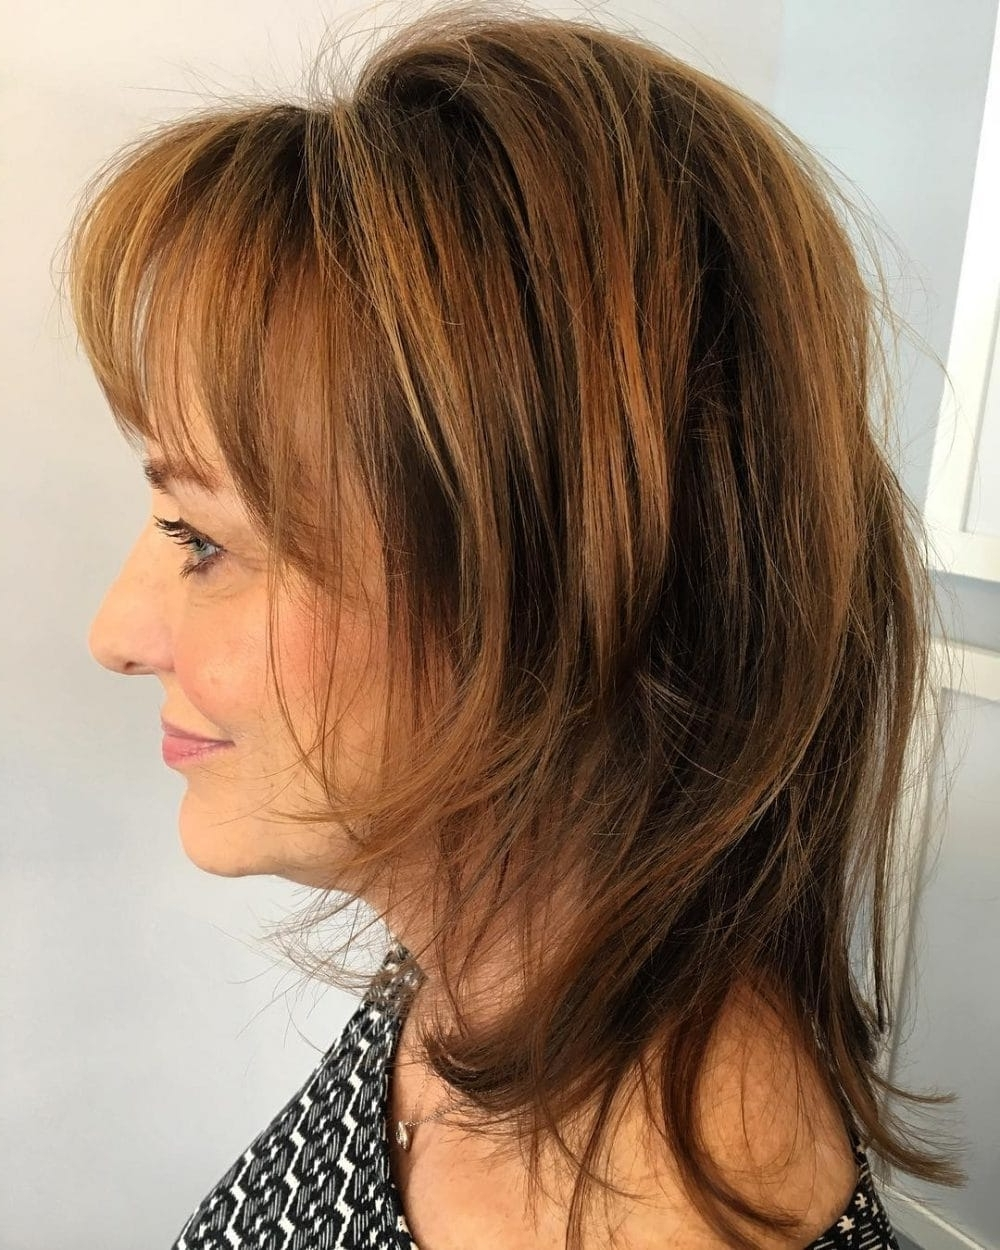 Shag Haircuts: 22 Totally Shagadelic Shag Haircuts To Try Today With Regard To Best And Newest Retro Shag Hairstyles (View 15 of 15)